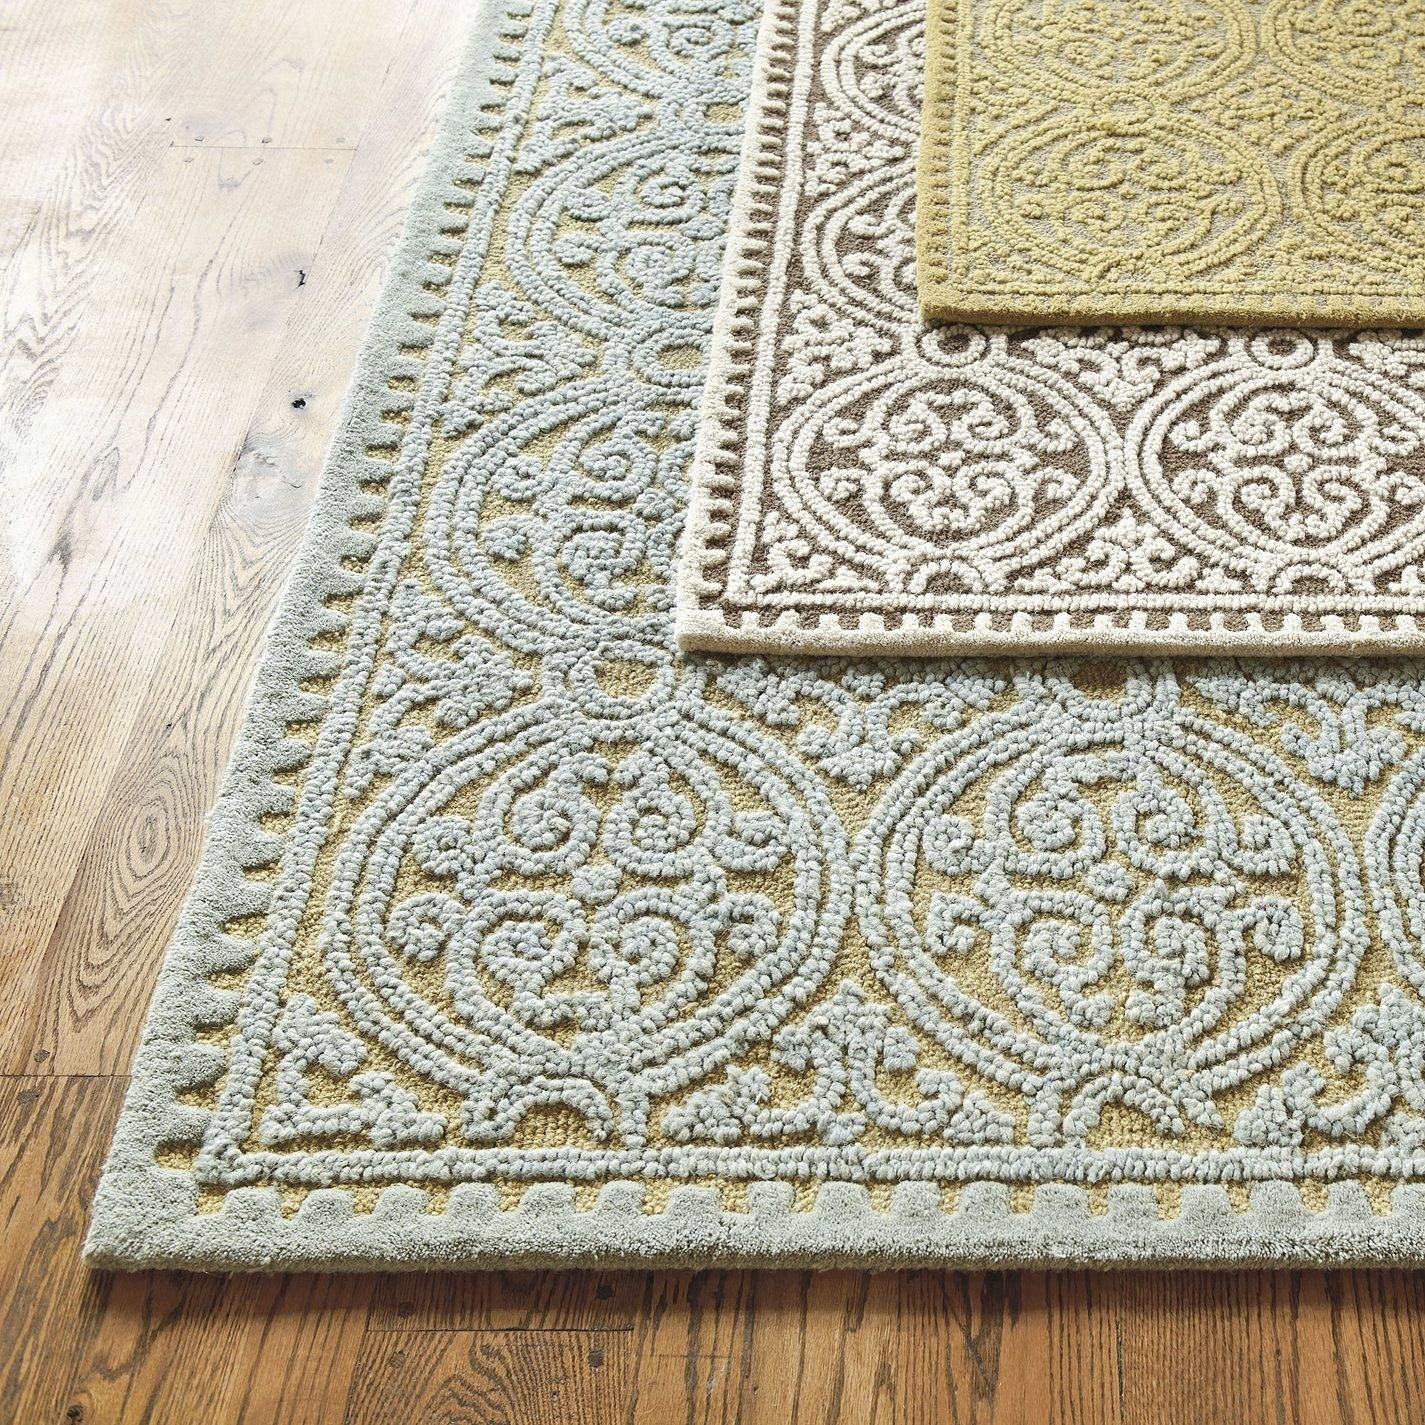 Designer Bath Rugs And Mats Ideas On Foter